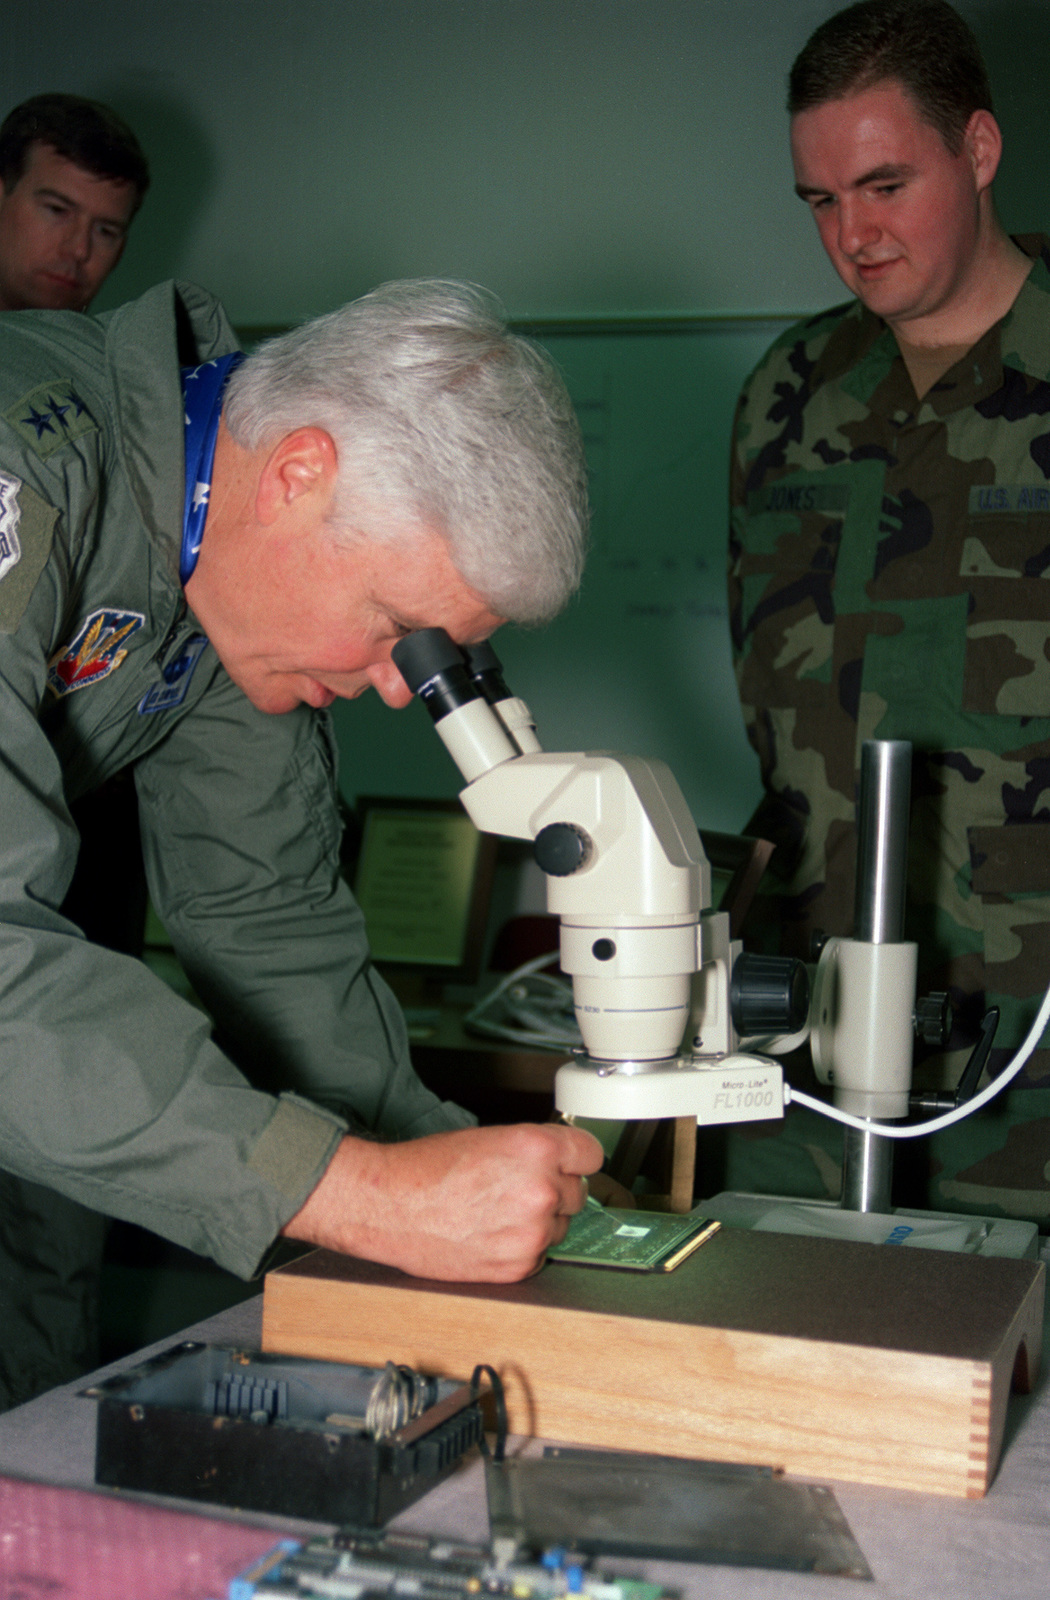 LGEN Frank B. Campbell, 12th Air Force Commander, takes a look at some computer chip repairs through a microscope as SRA Jones (right) observes. The tour took place in the Gold Flag section of the 55th Maintenance Squadron